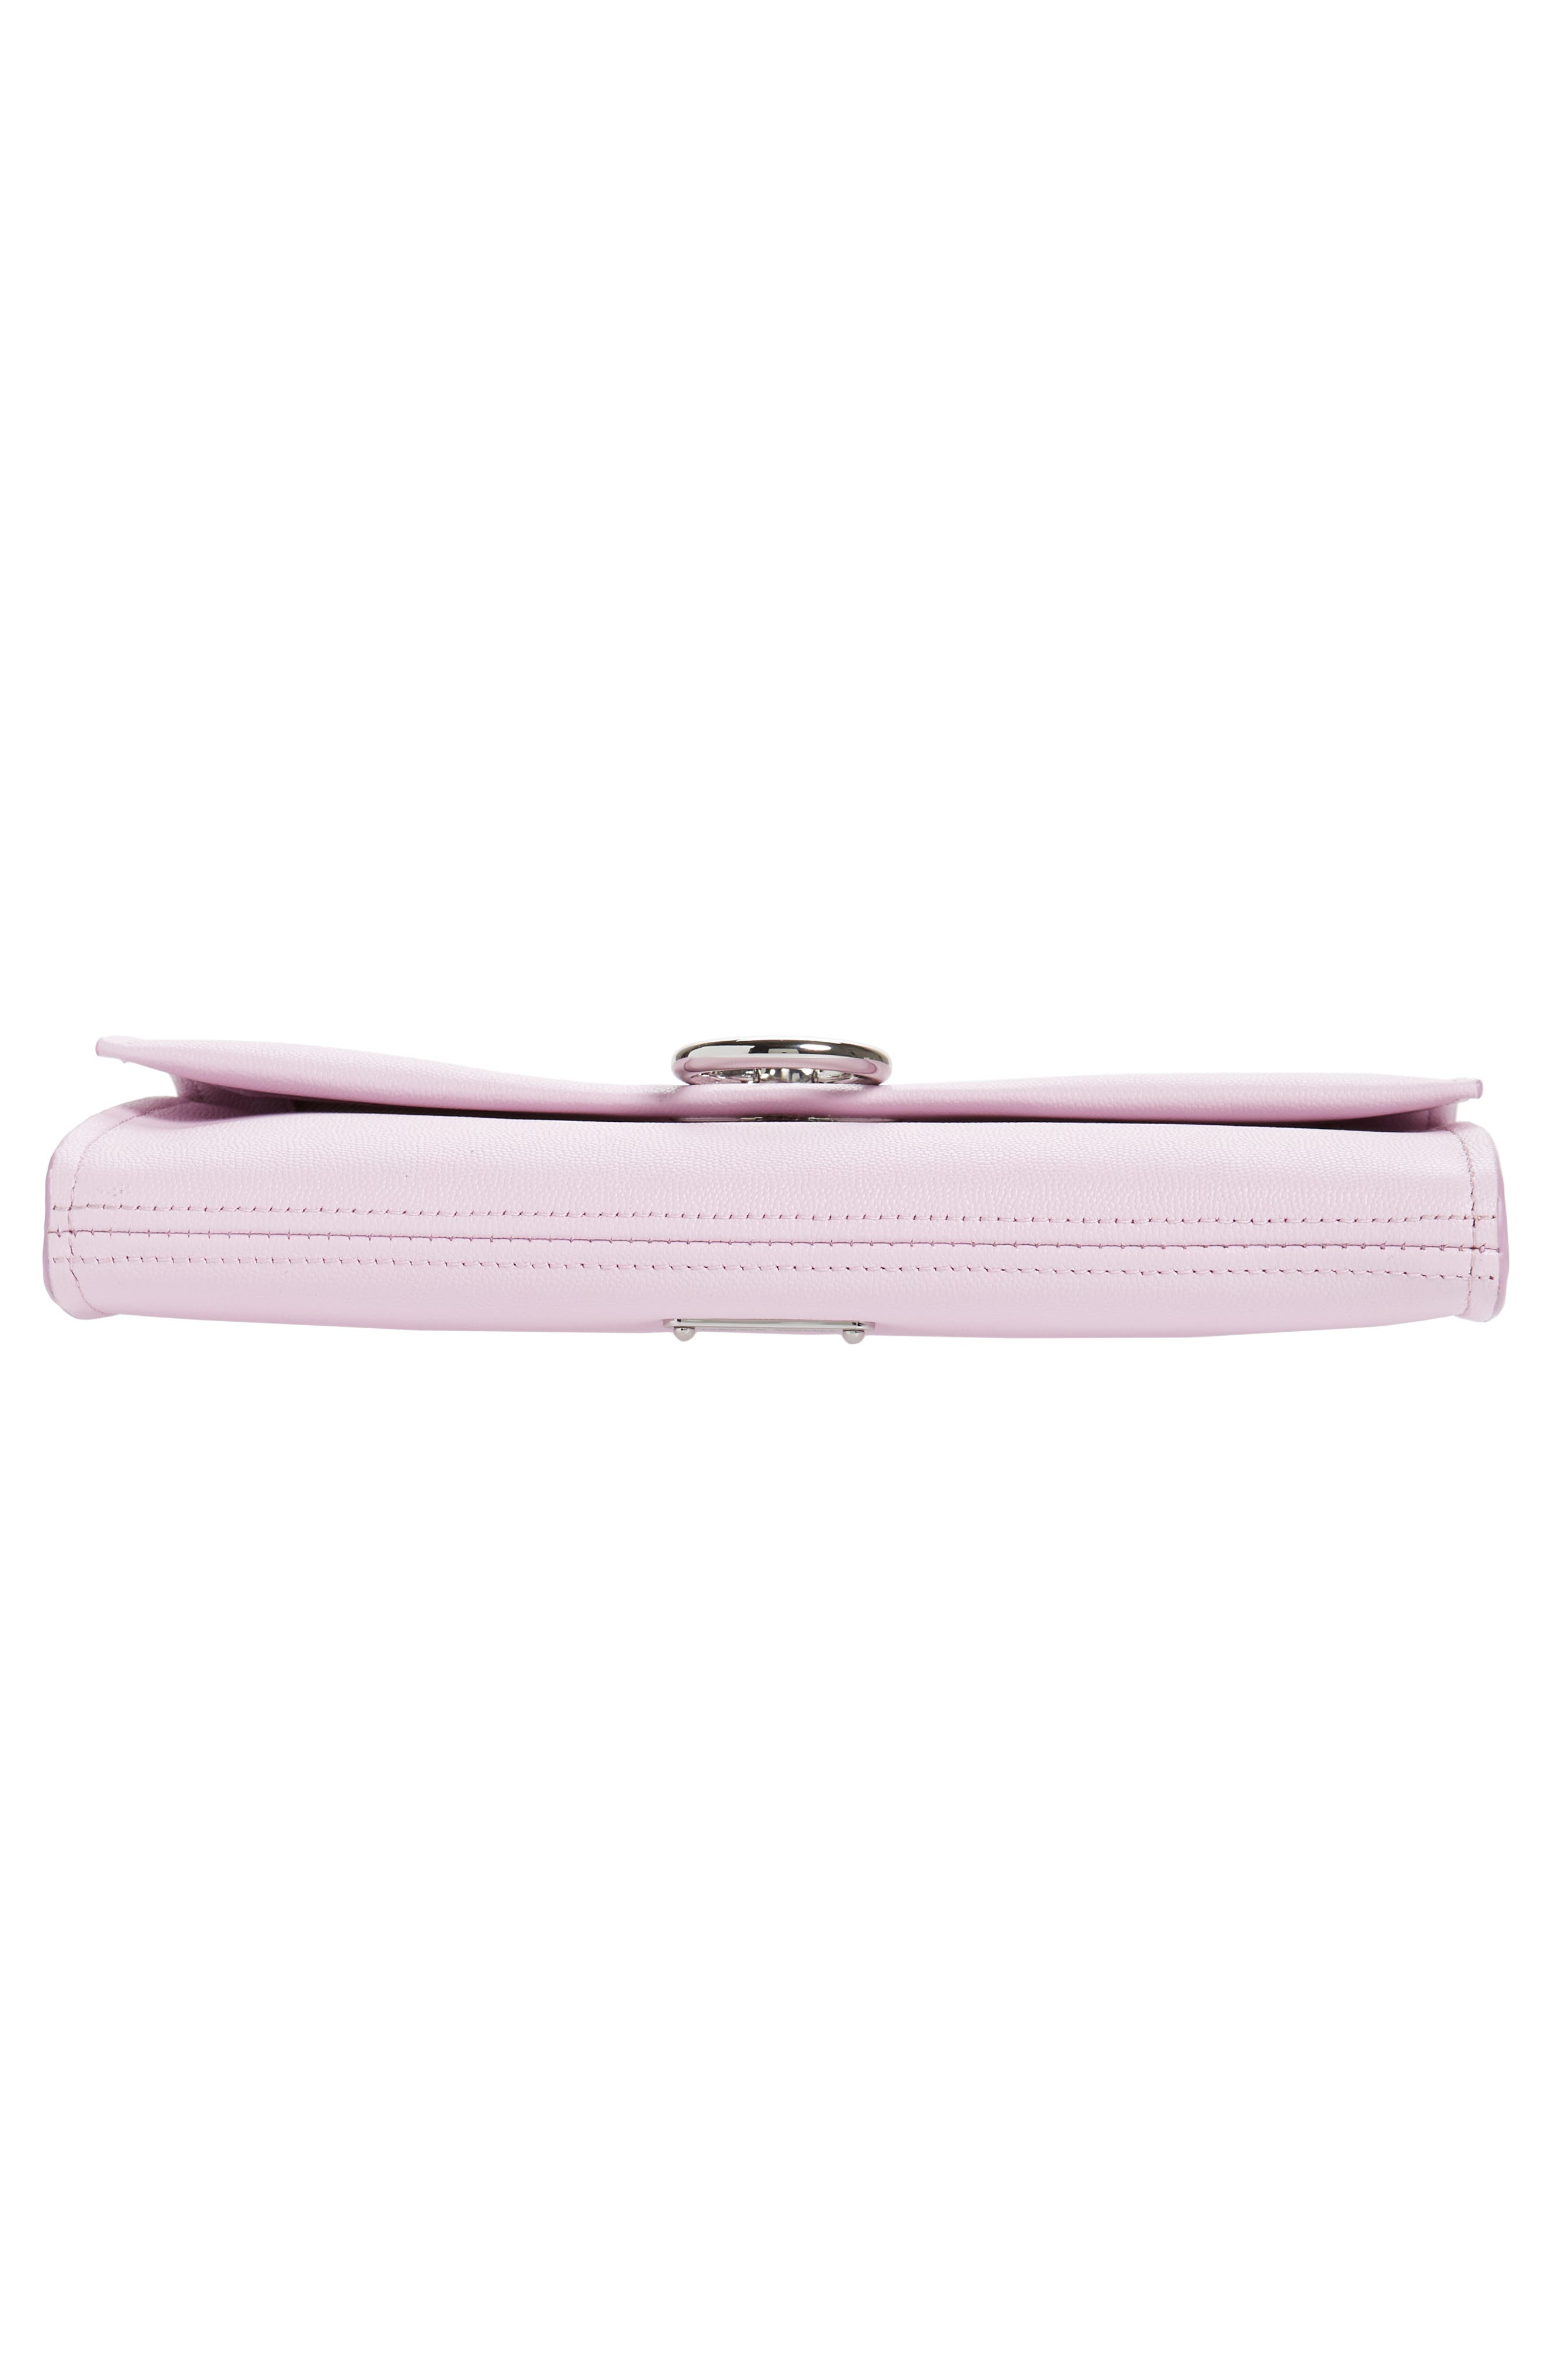 REBECCA MINKOFF, Jean Leather Clutch, Alternate thumbnail 7, color, LIGHT ORCHID